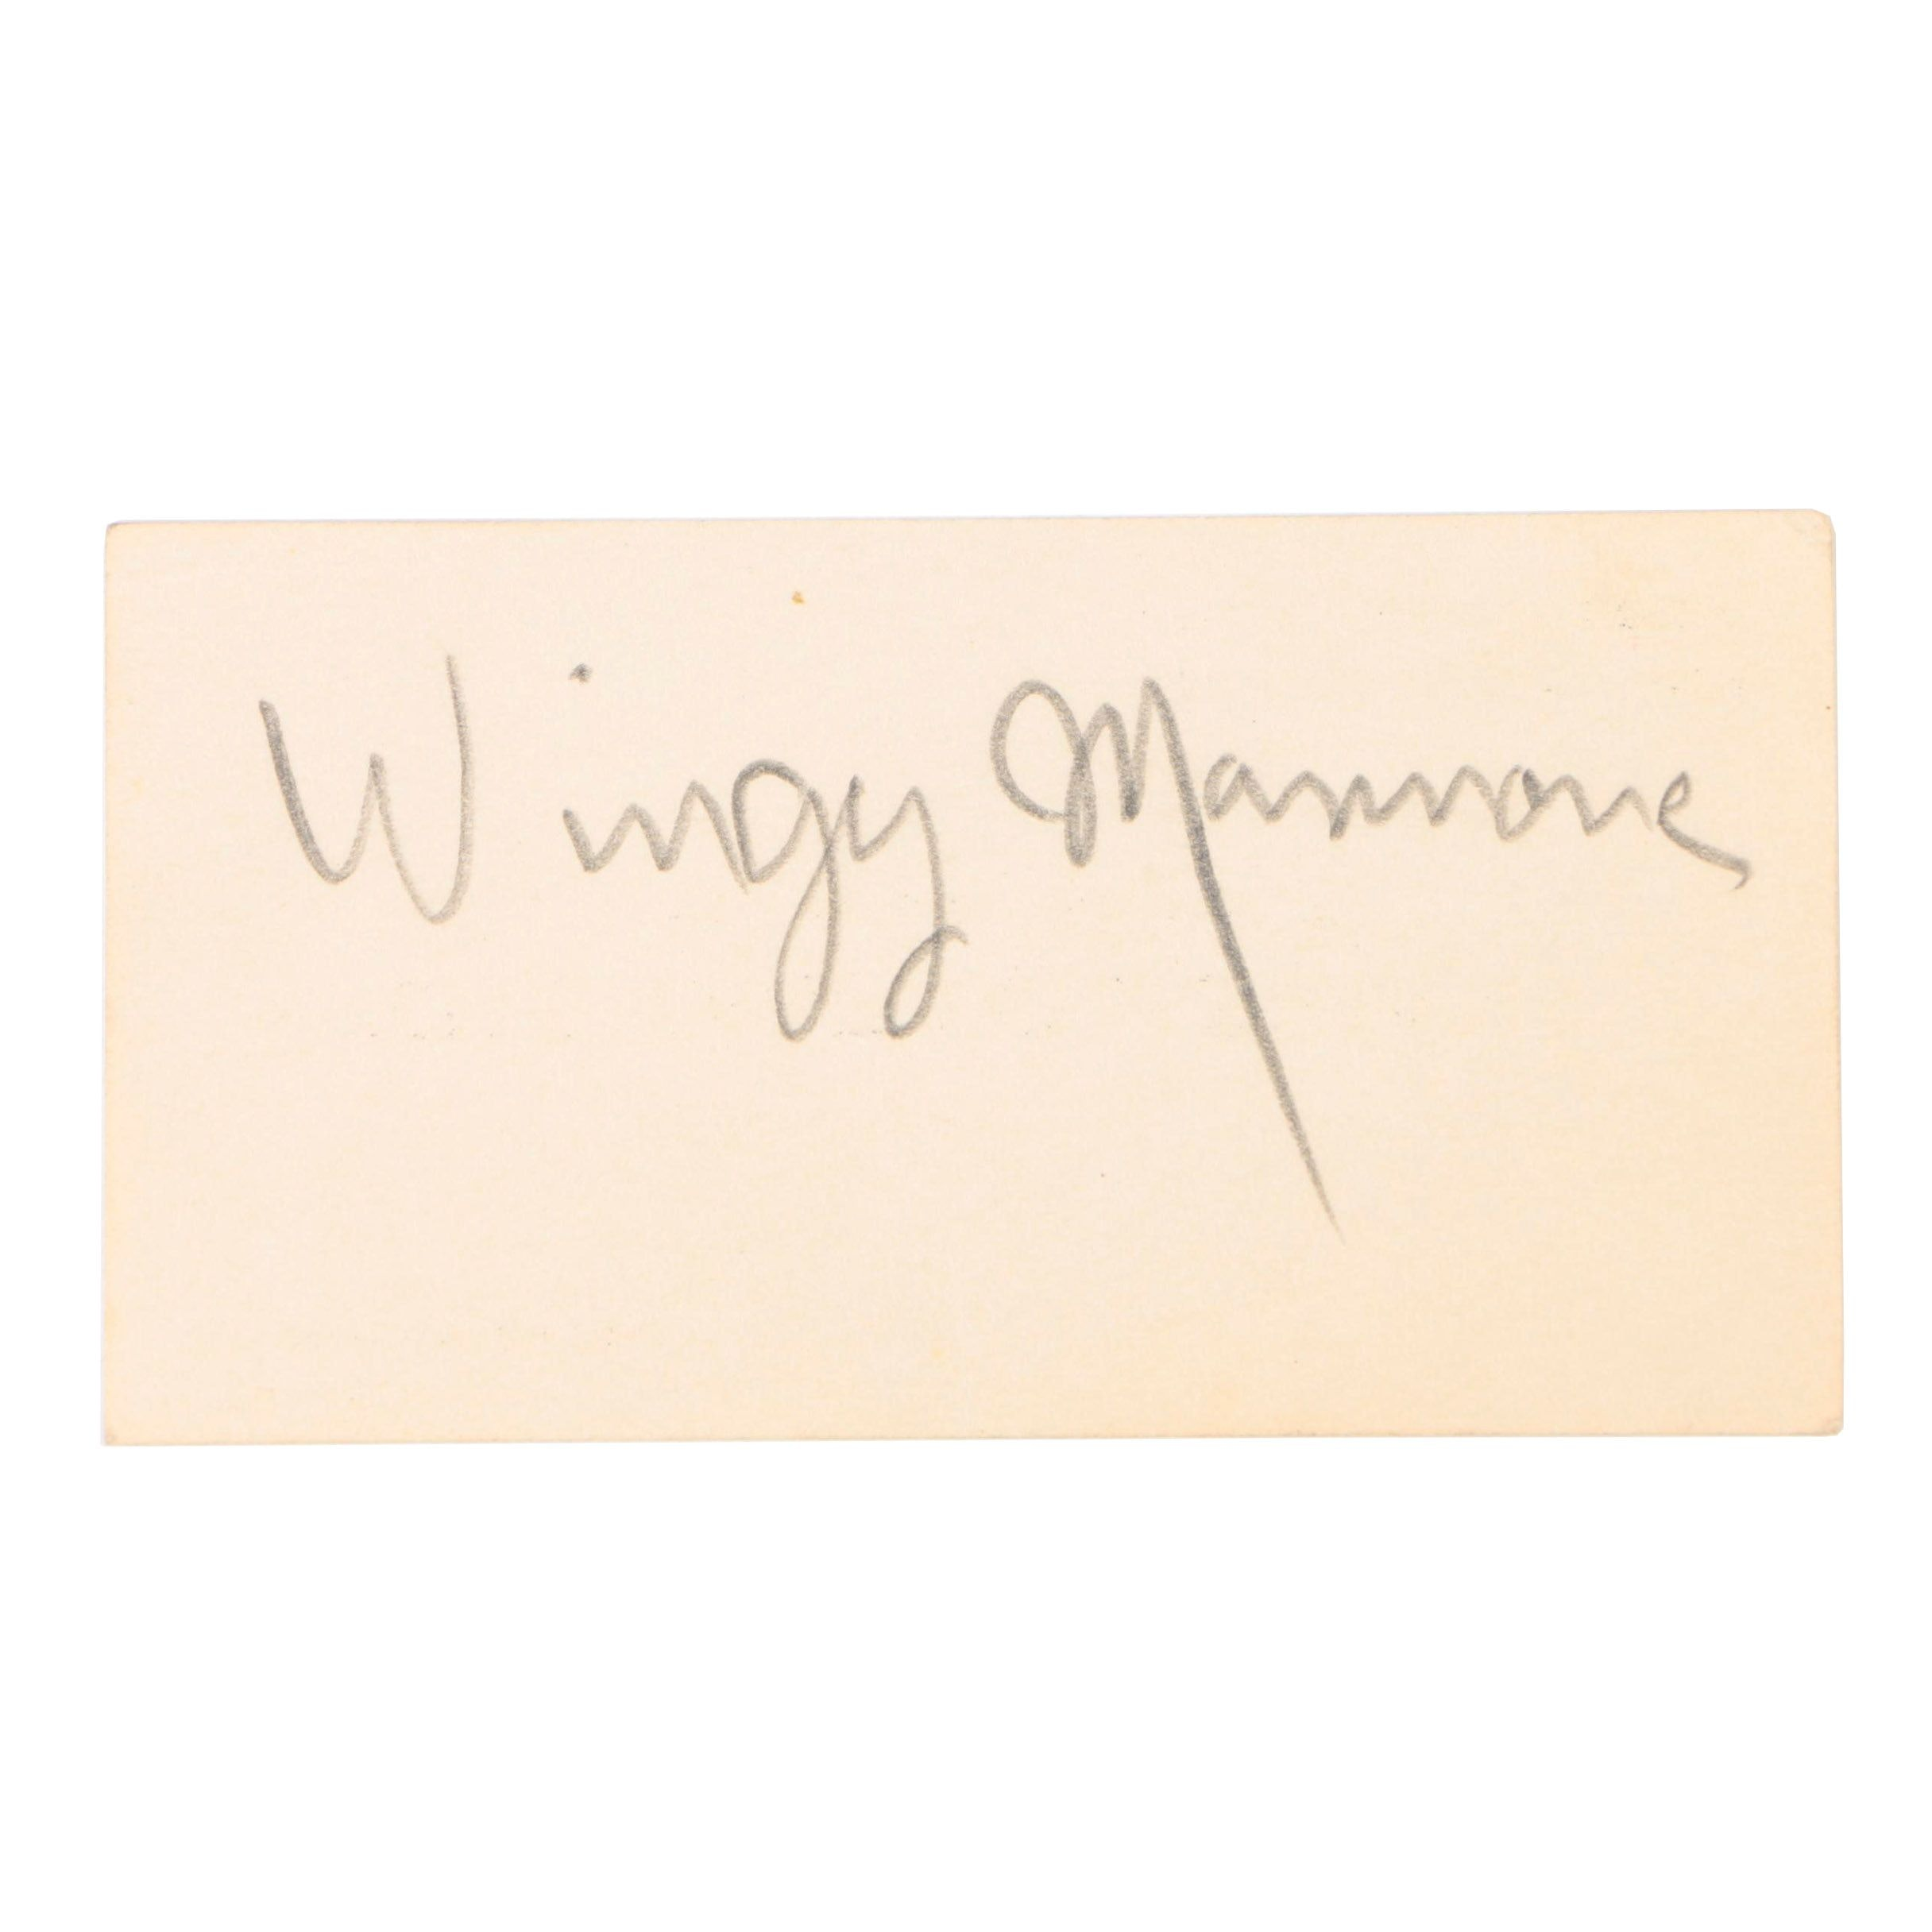 American Jazz Trumpeter Wingy Manone Autograph